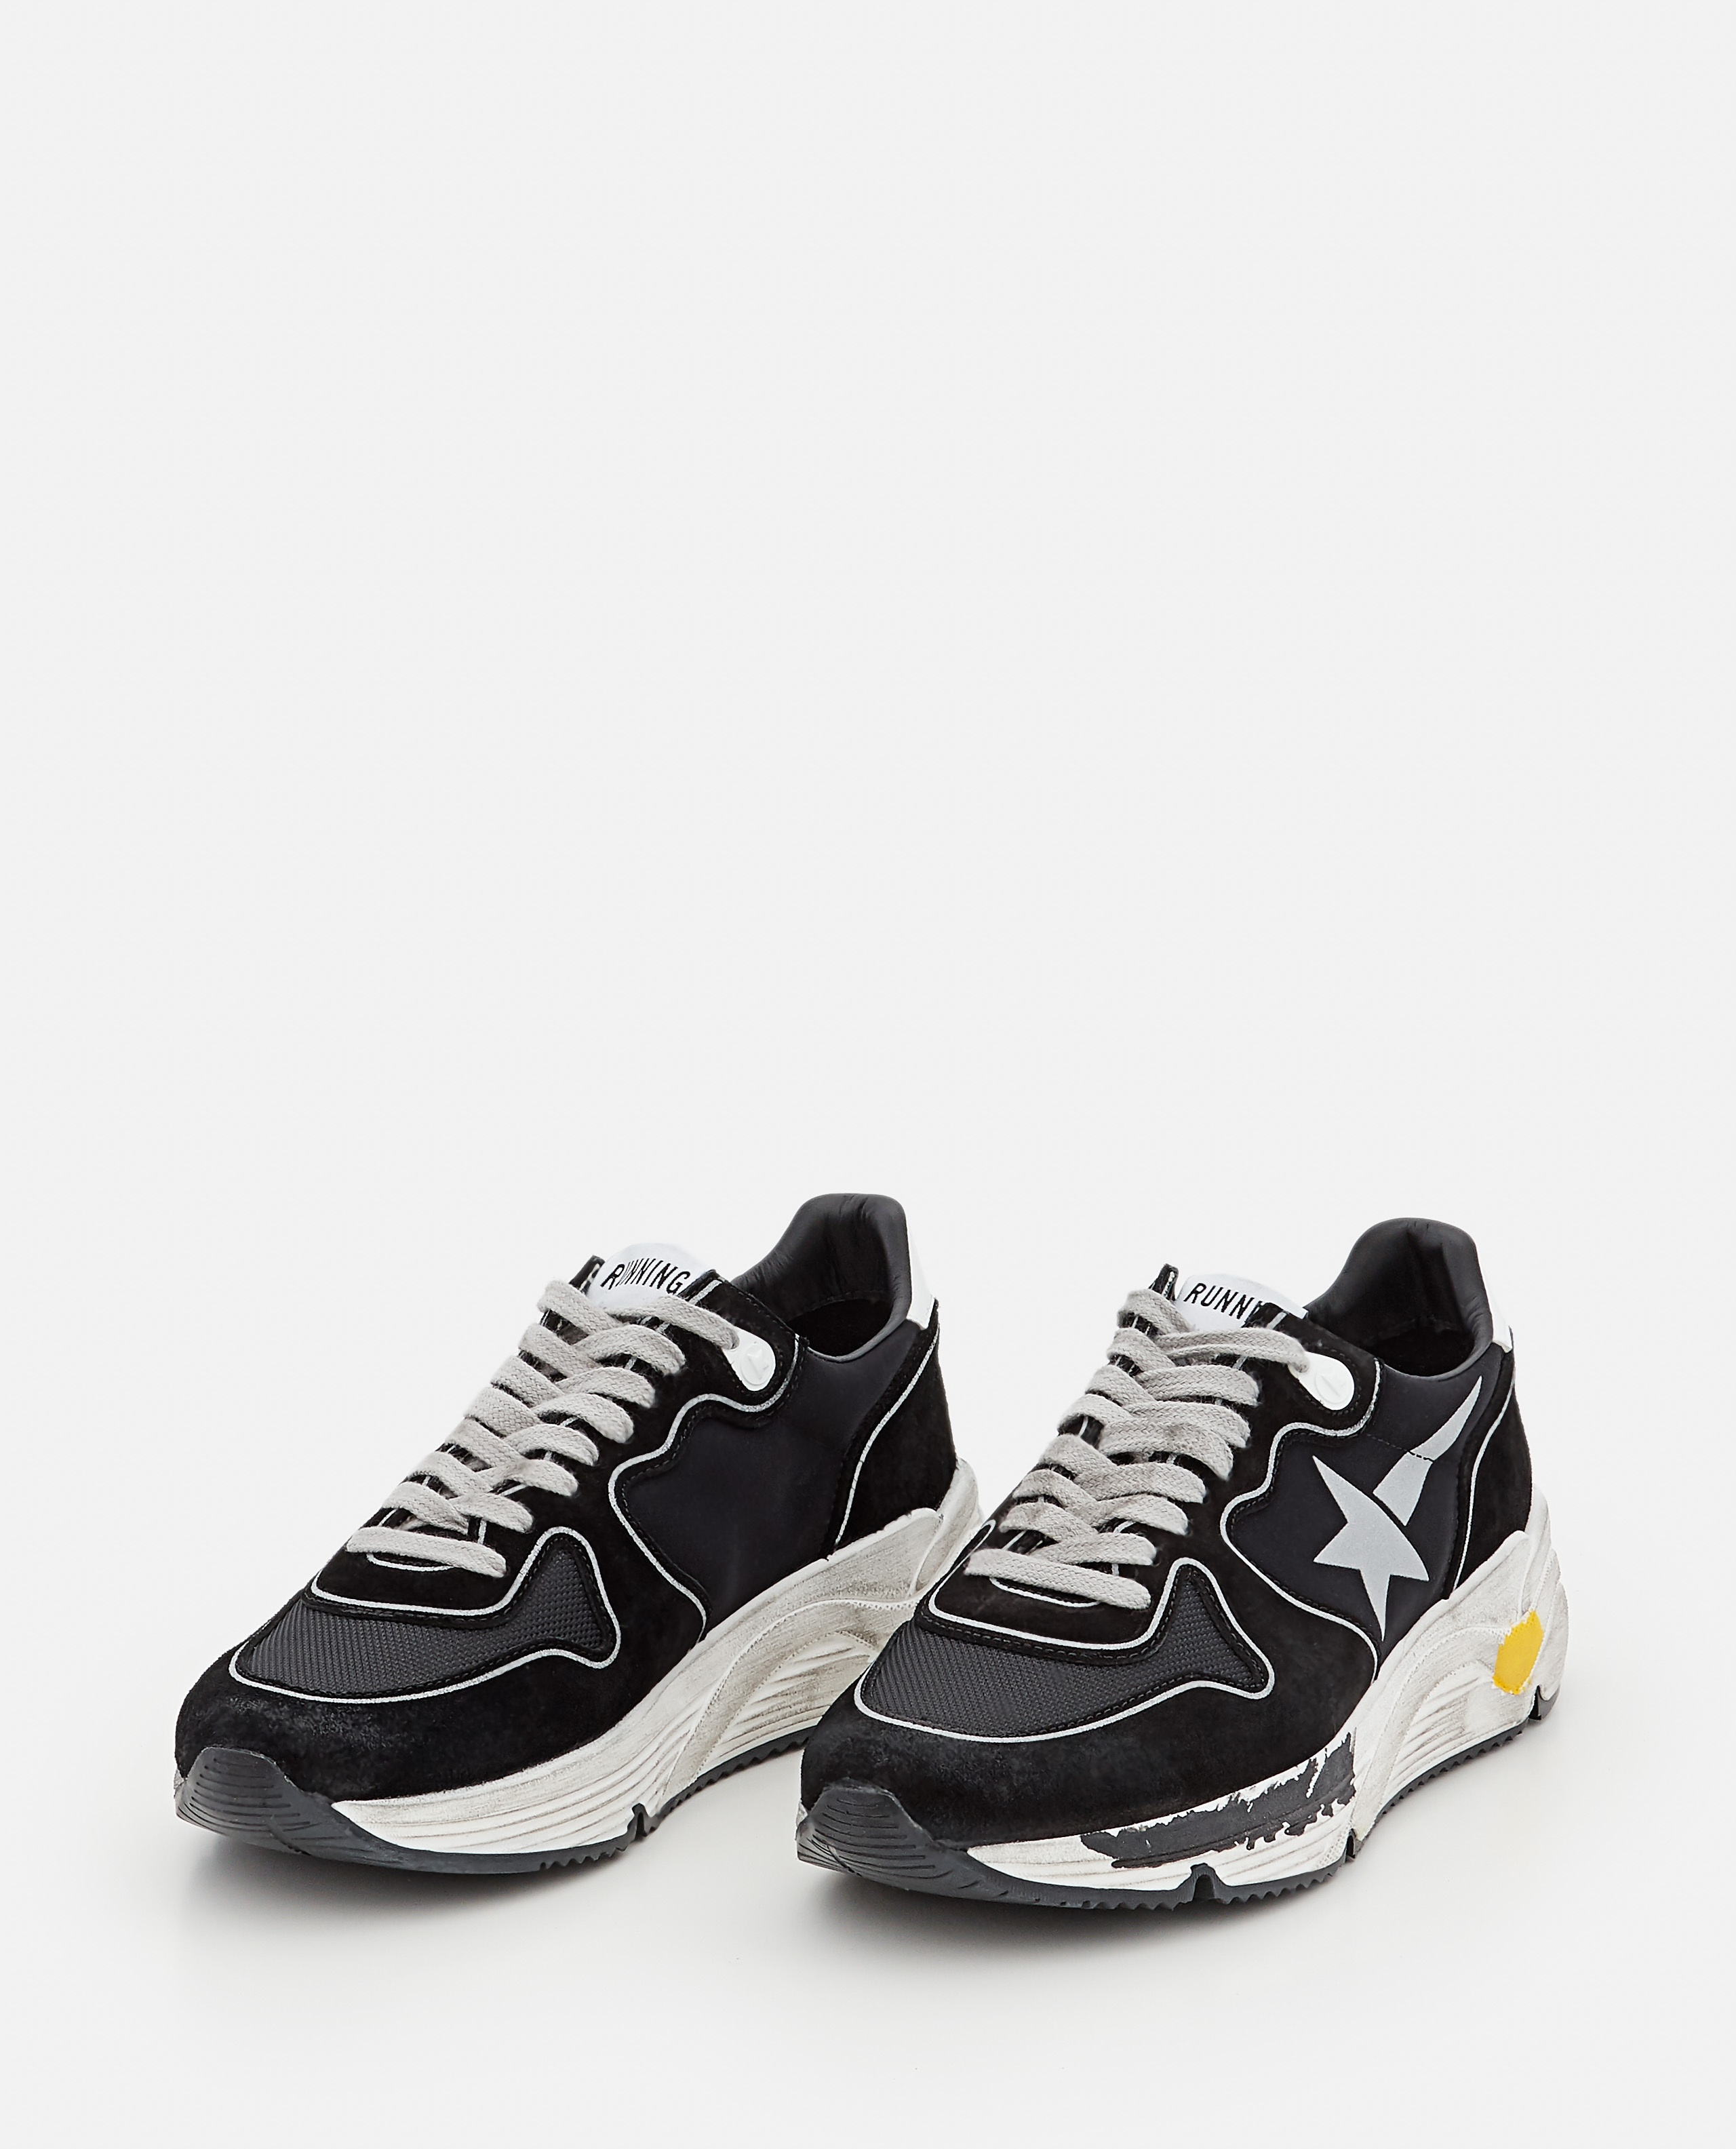 RUNNING SOLE LYCRA AND LEATHER SNEAKERS Women Golden Goose 000322020047097 2